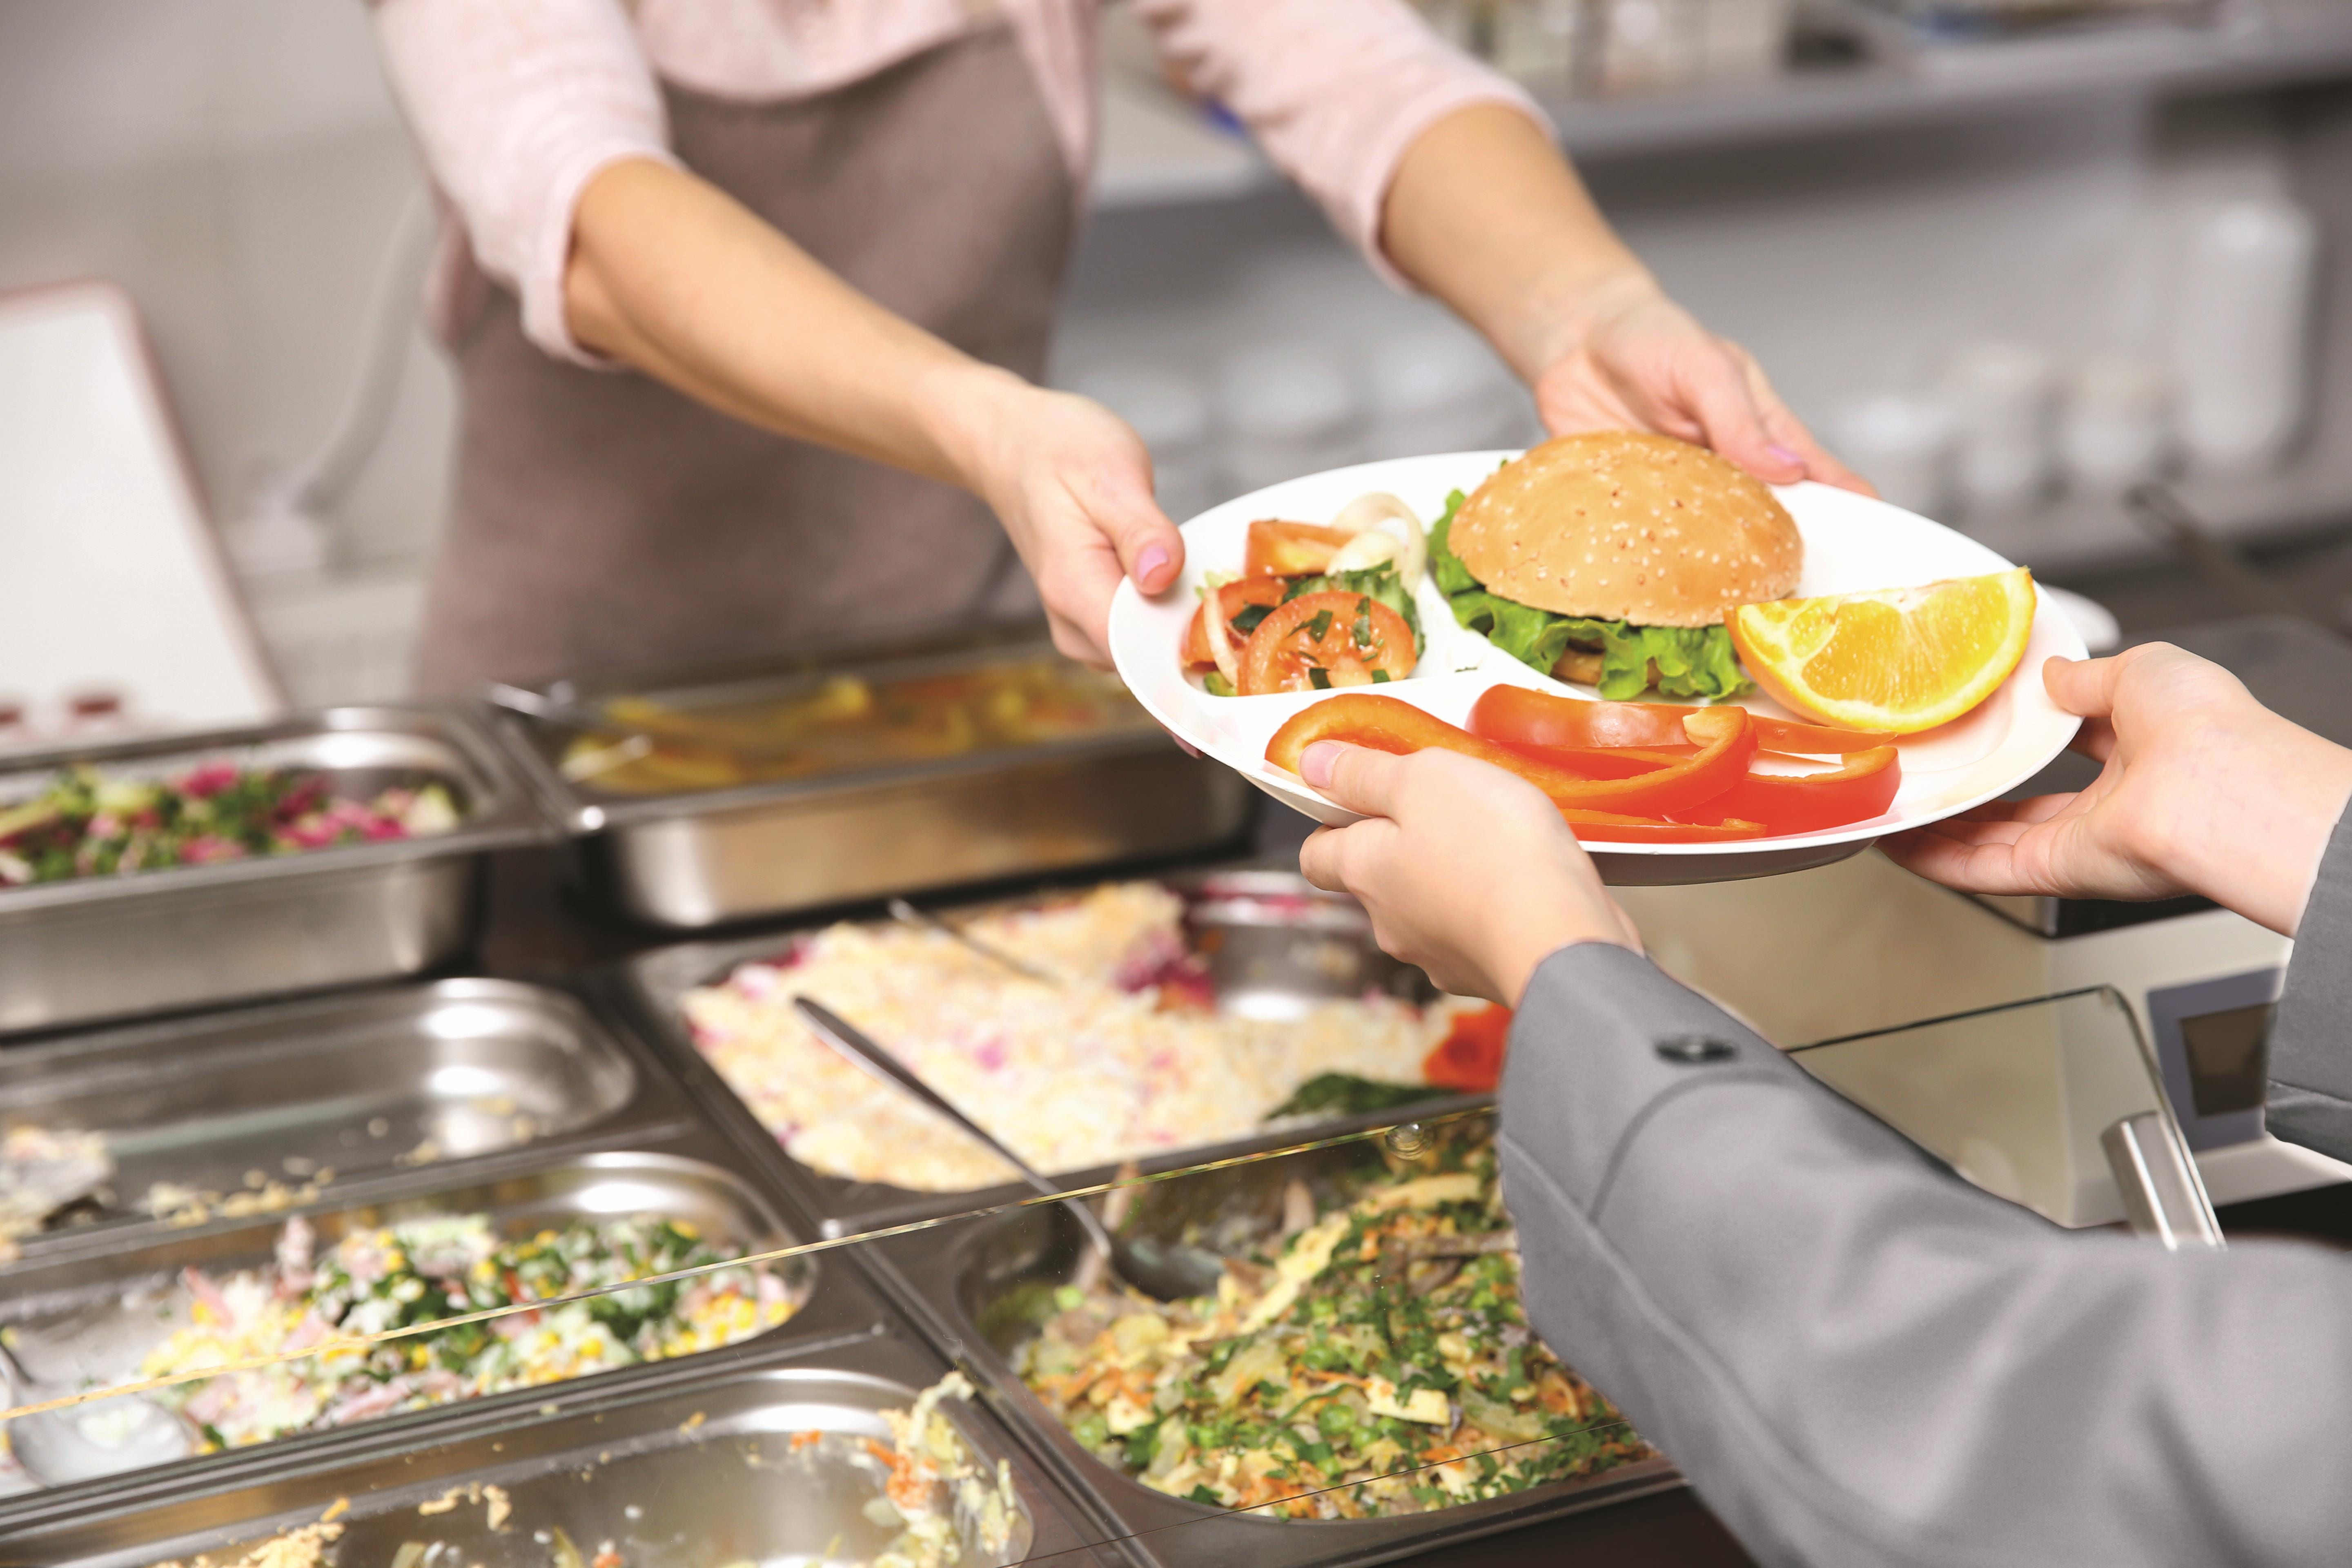 Health in a professional kitchen